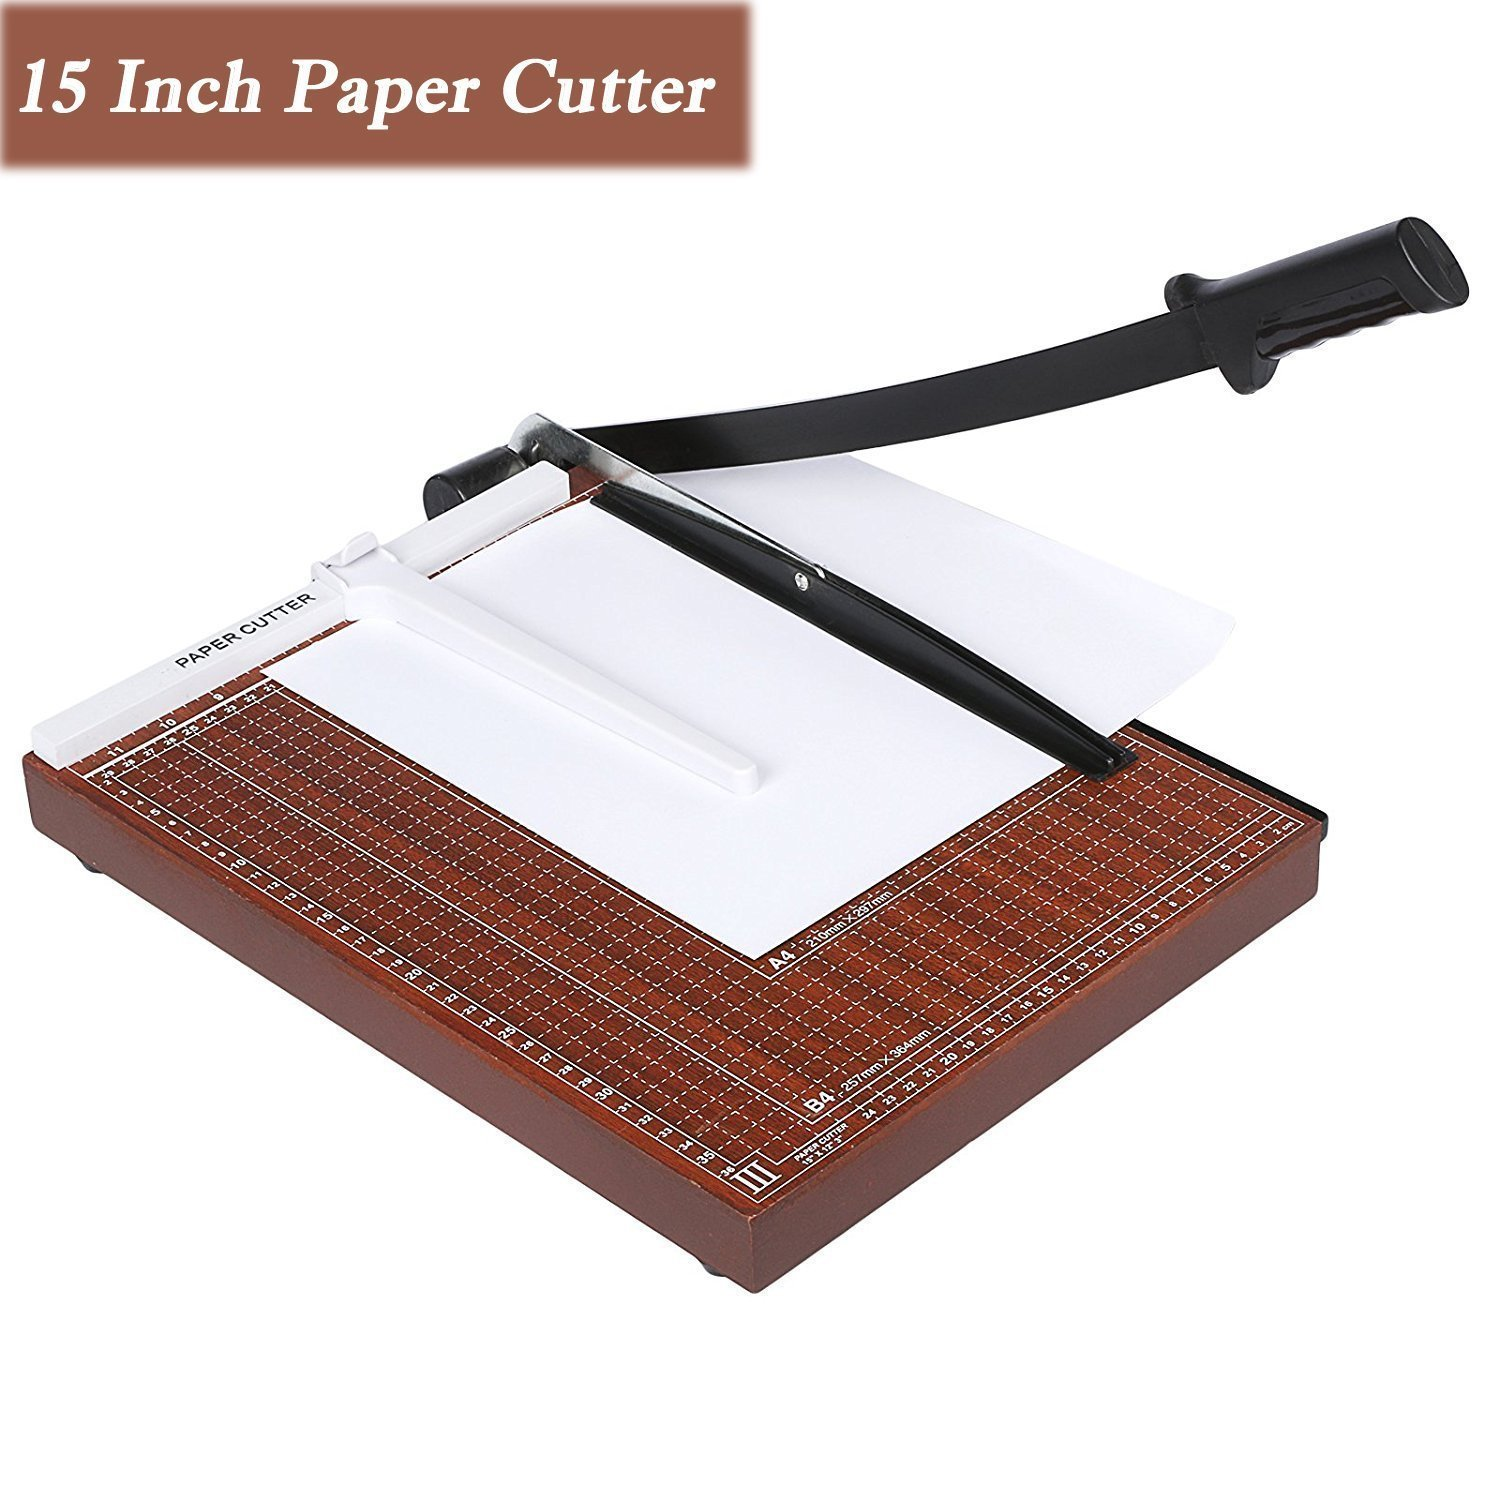 """Fashine 15"""" Guillotine Metal Base Paper Trimmer for Coupon, Craft, Card and Photo Paper Cutter 12 Sheet Capacity Paper Guillotine Cutter, A3/B4/A4/B5/A5/B6/B7"""